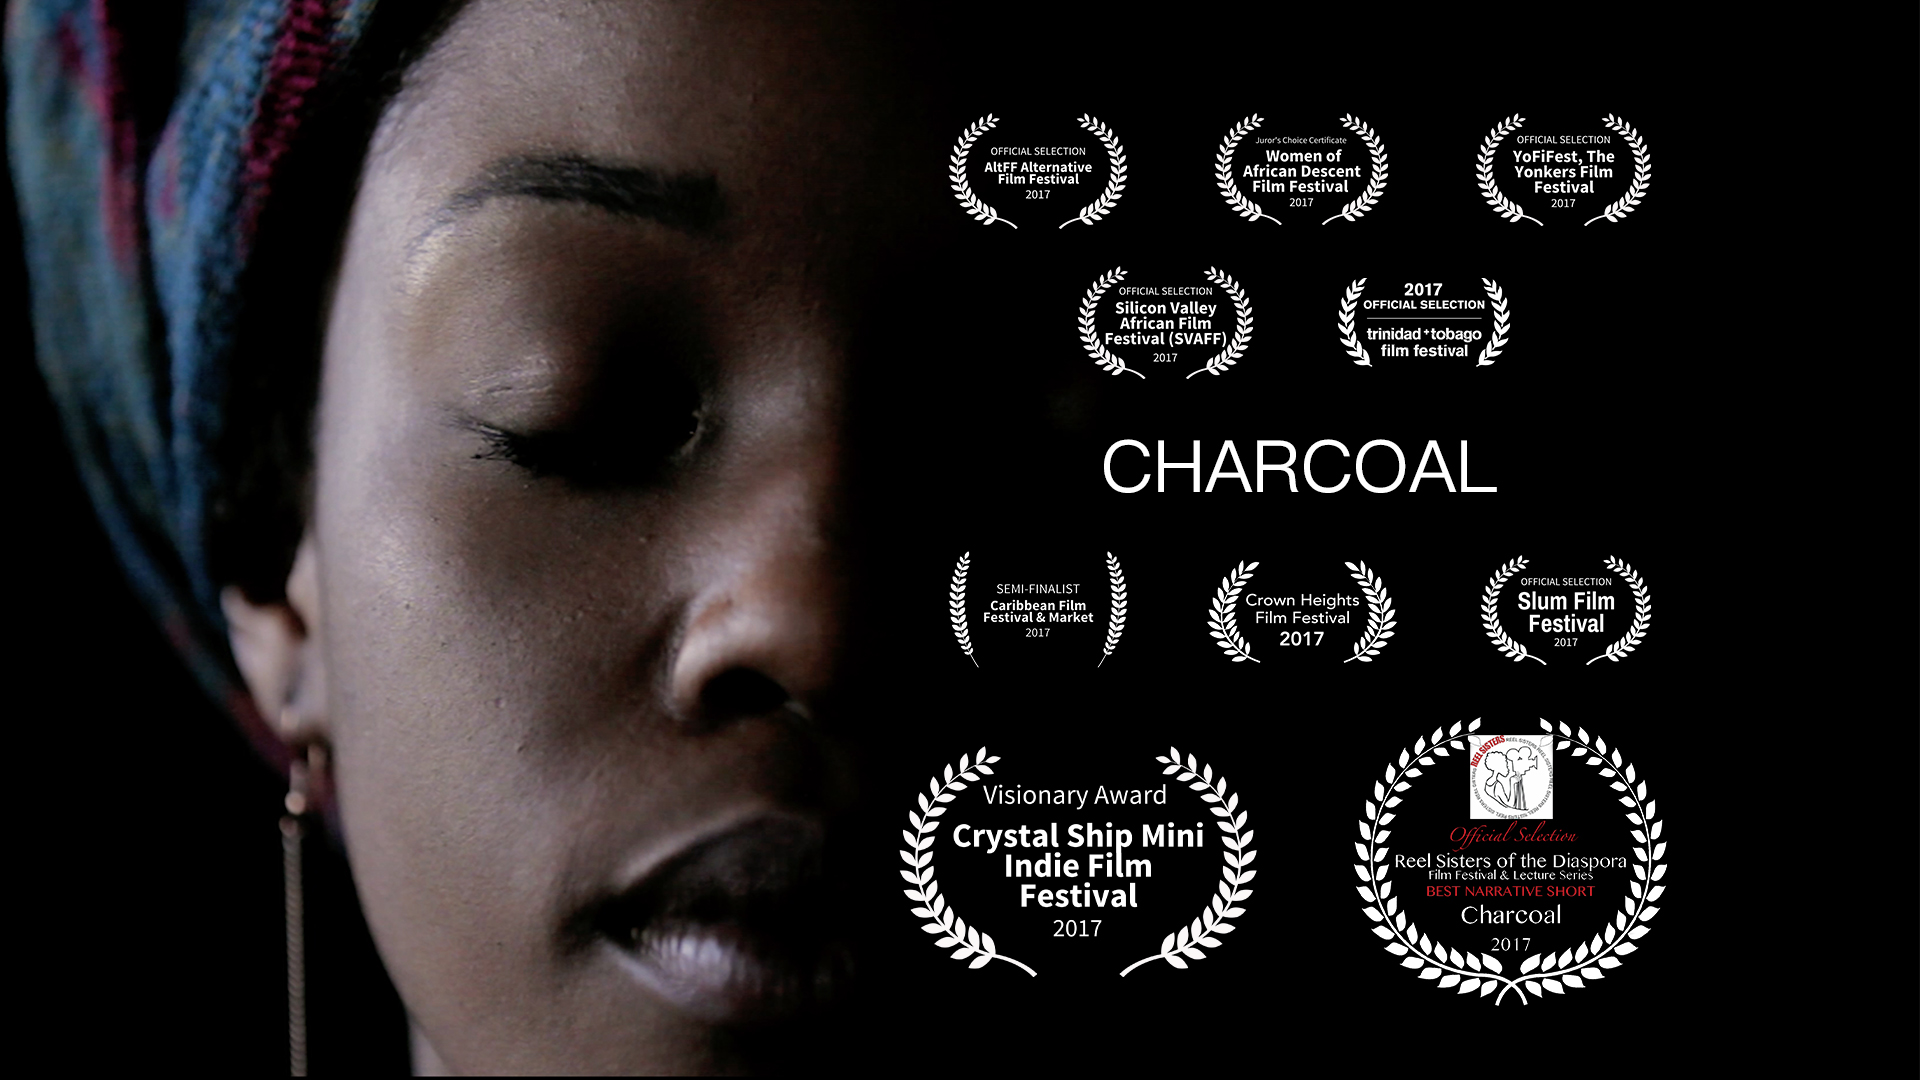 Francesca Andre, Charcoal, Short Film, Blackness, Colorism, Self-Acceptance, Love, African, Diaspora, Haiti, Self-Hate, Anti-Blackness, BK Reader, Daphnee